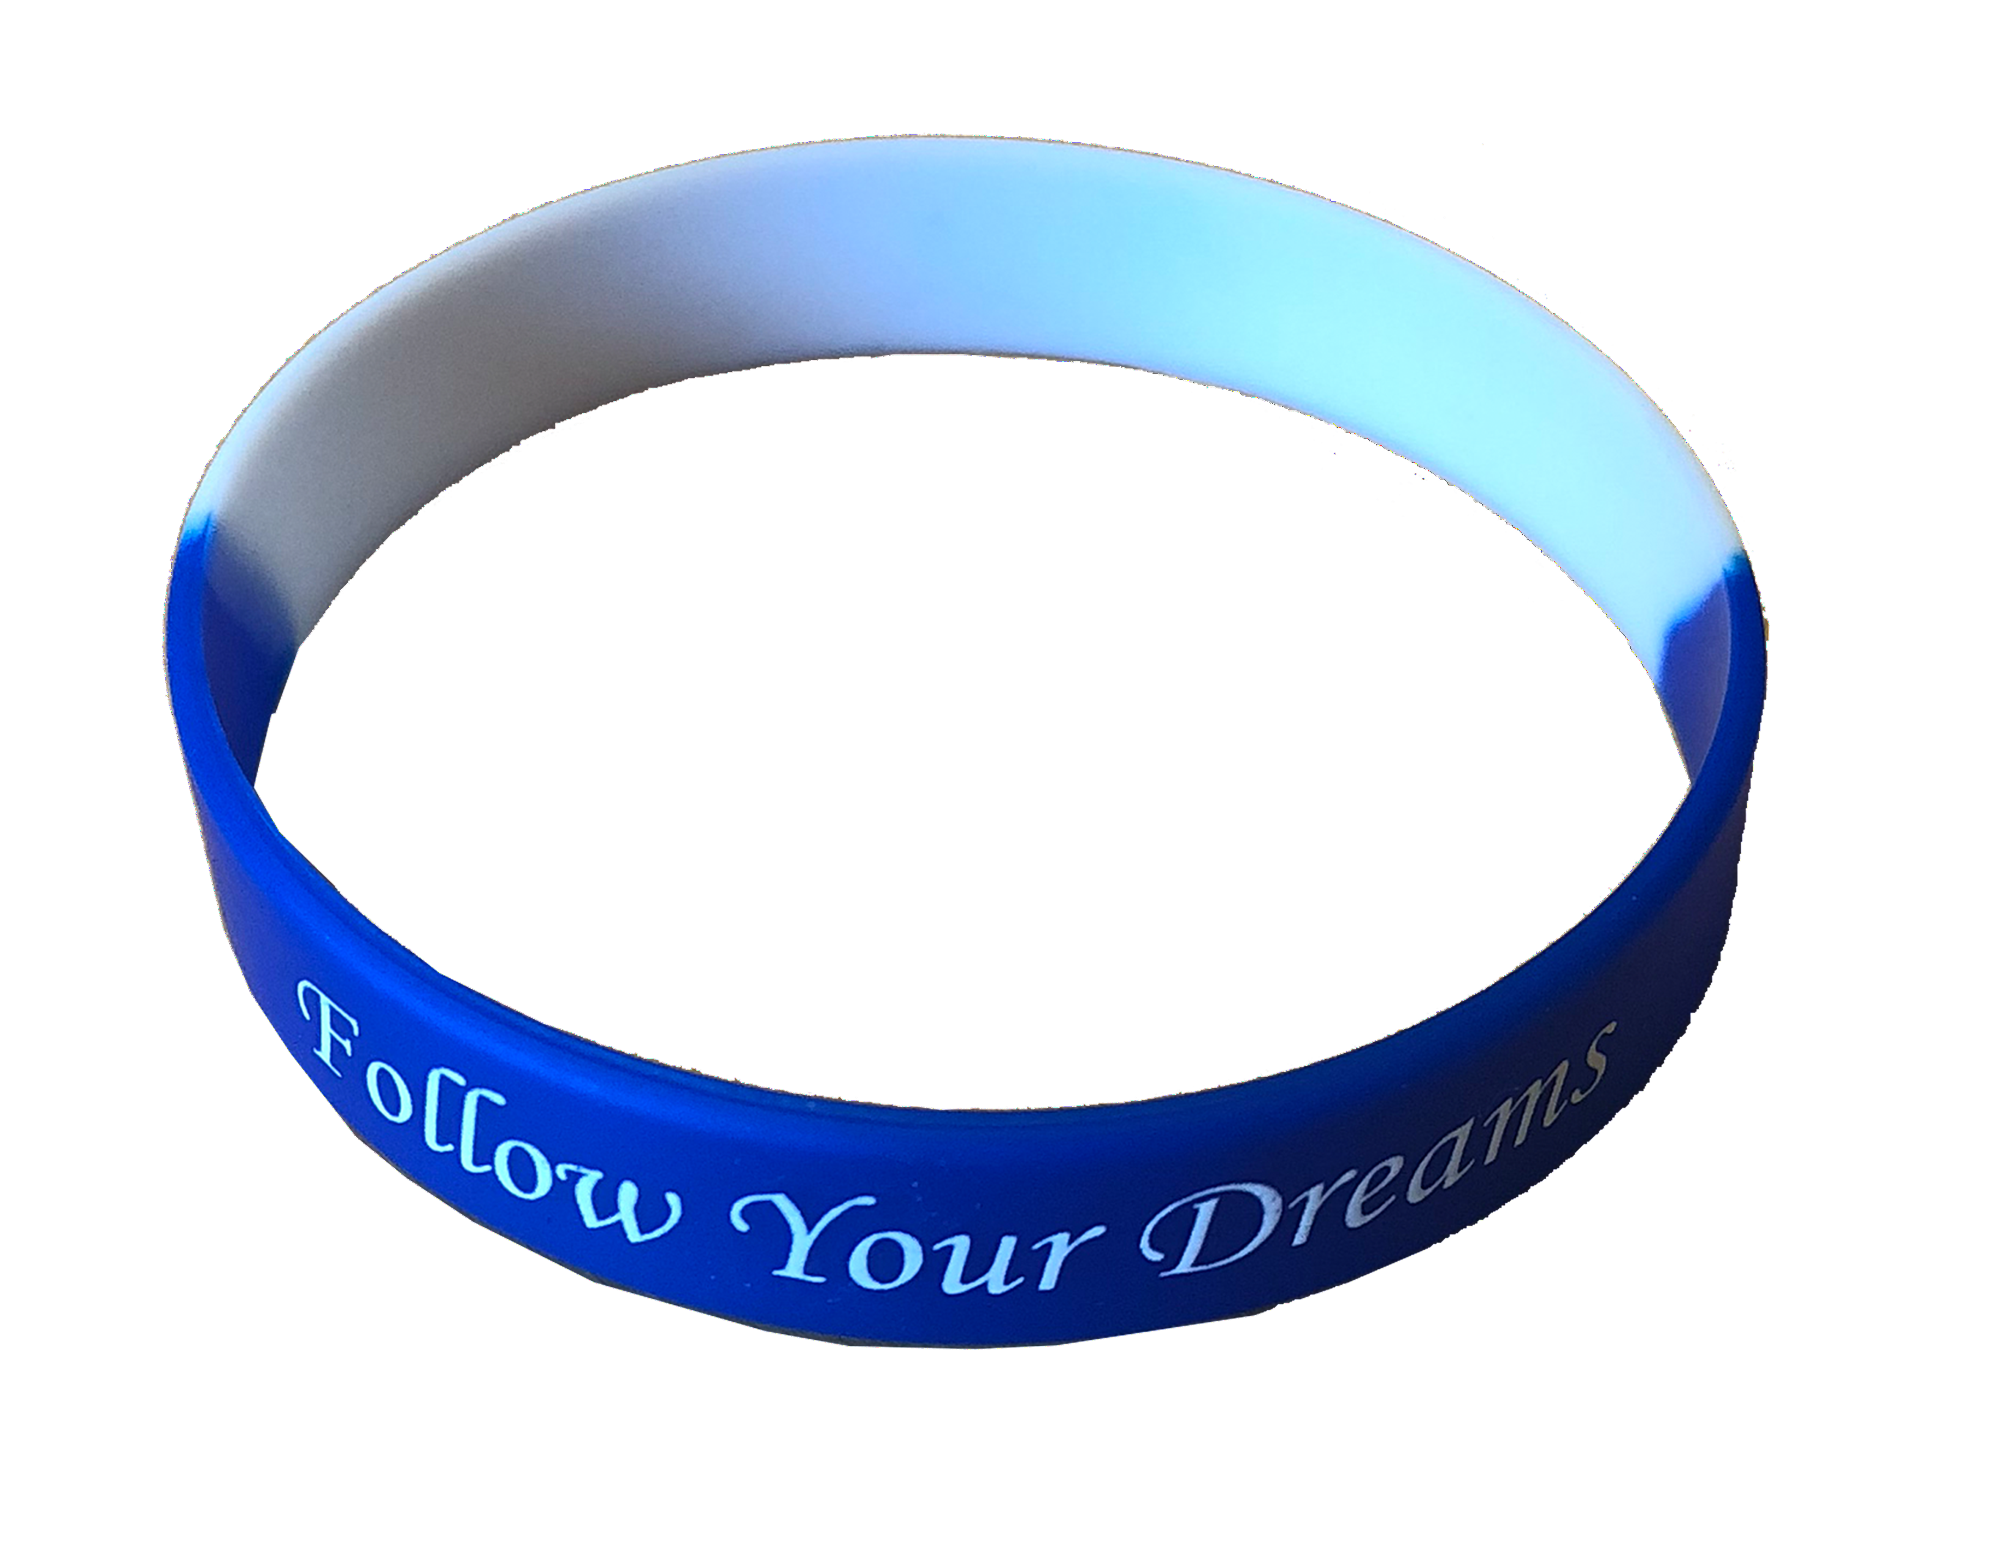 Follow Your Dreams Wrist Band